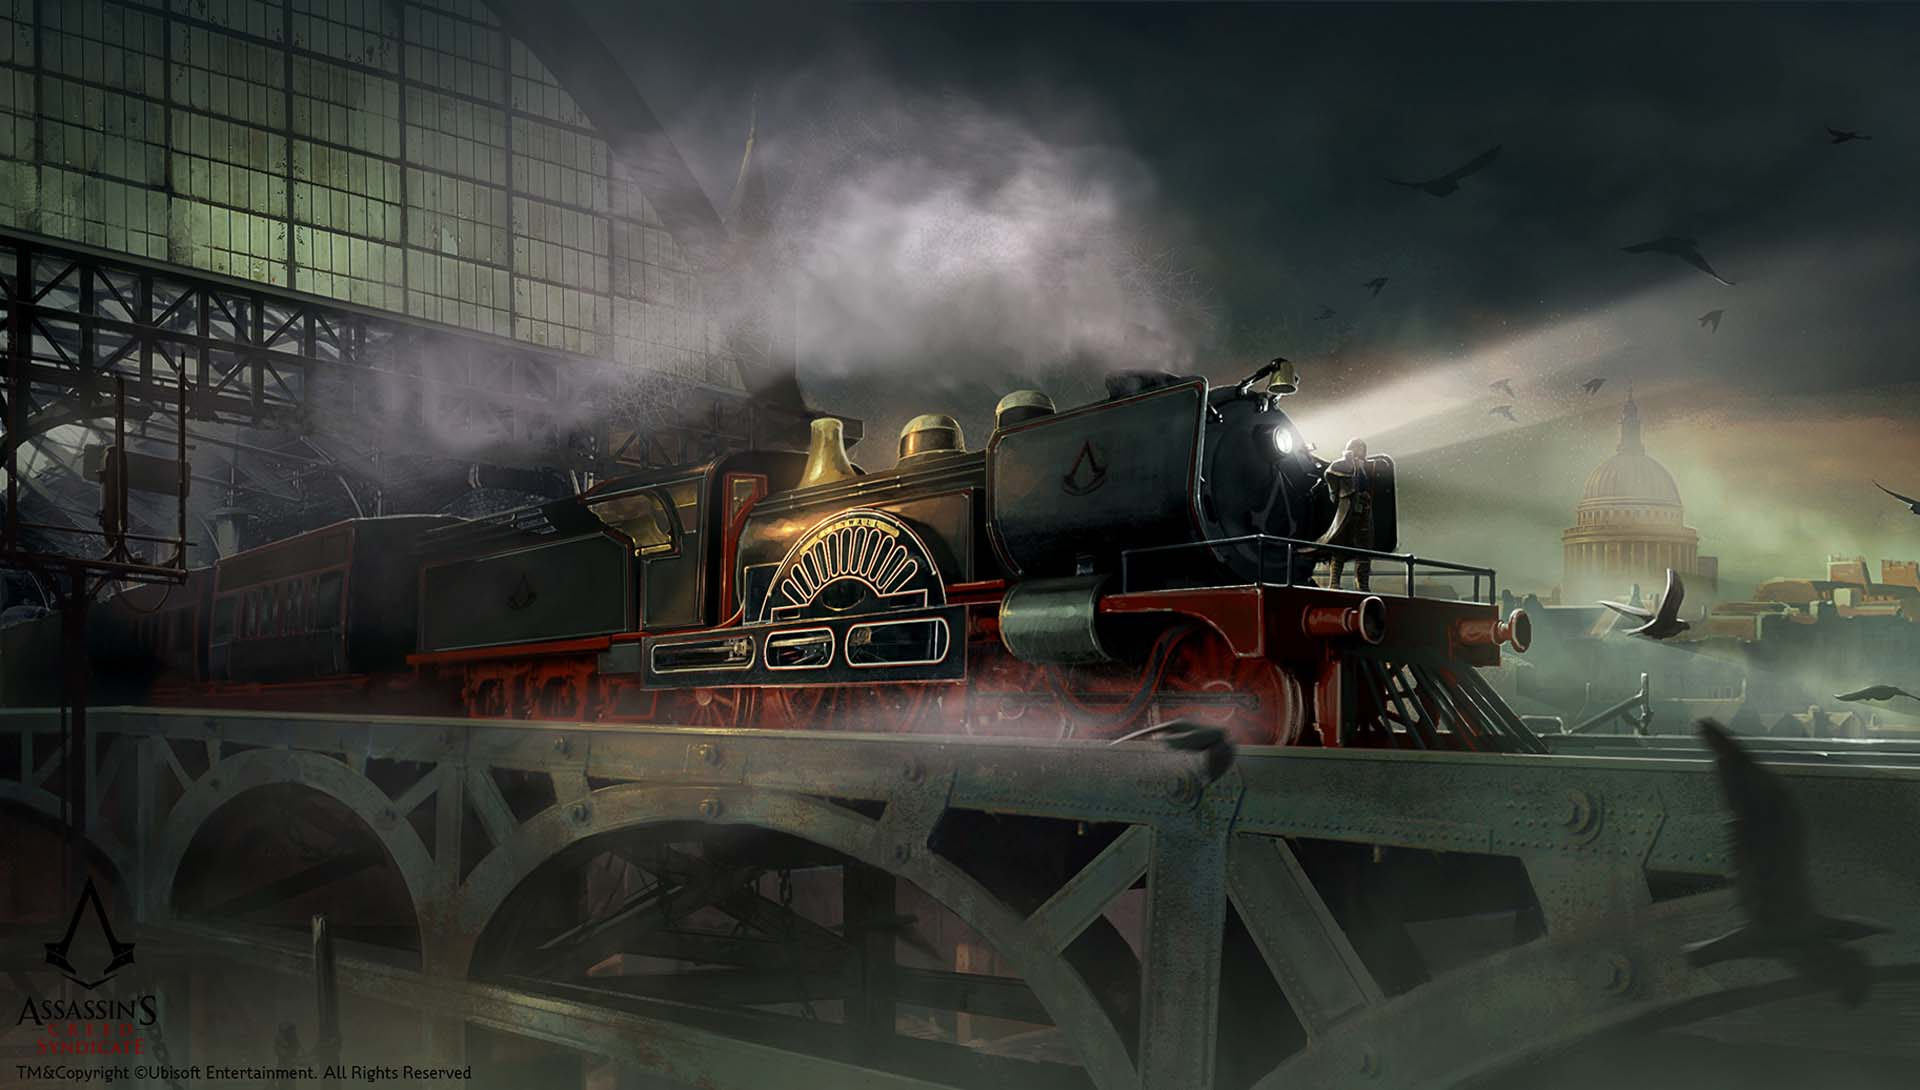 Locomotive d'Assassin's Creed Syndicate - Ubisoft Entertainment